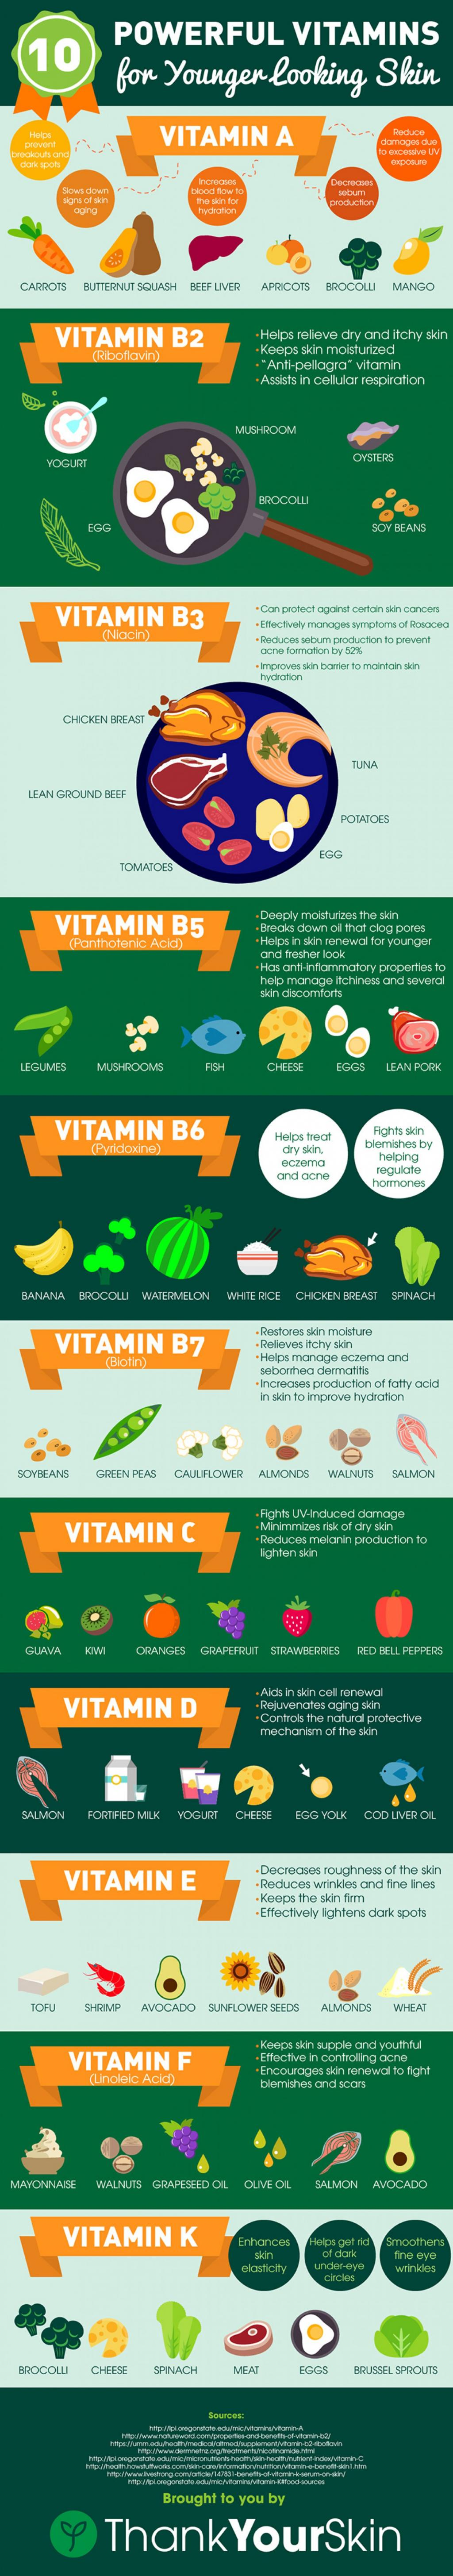 10 Powerful Vitamins